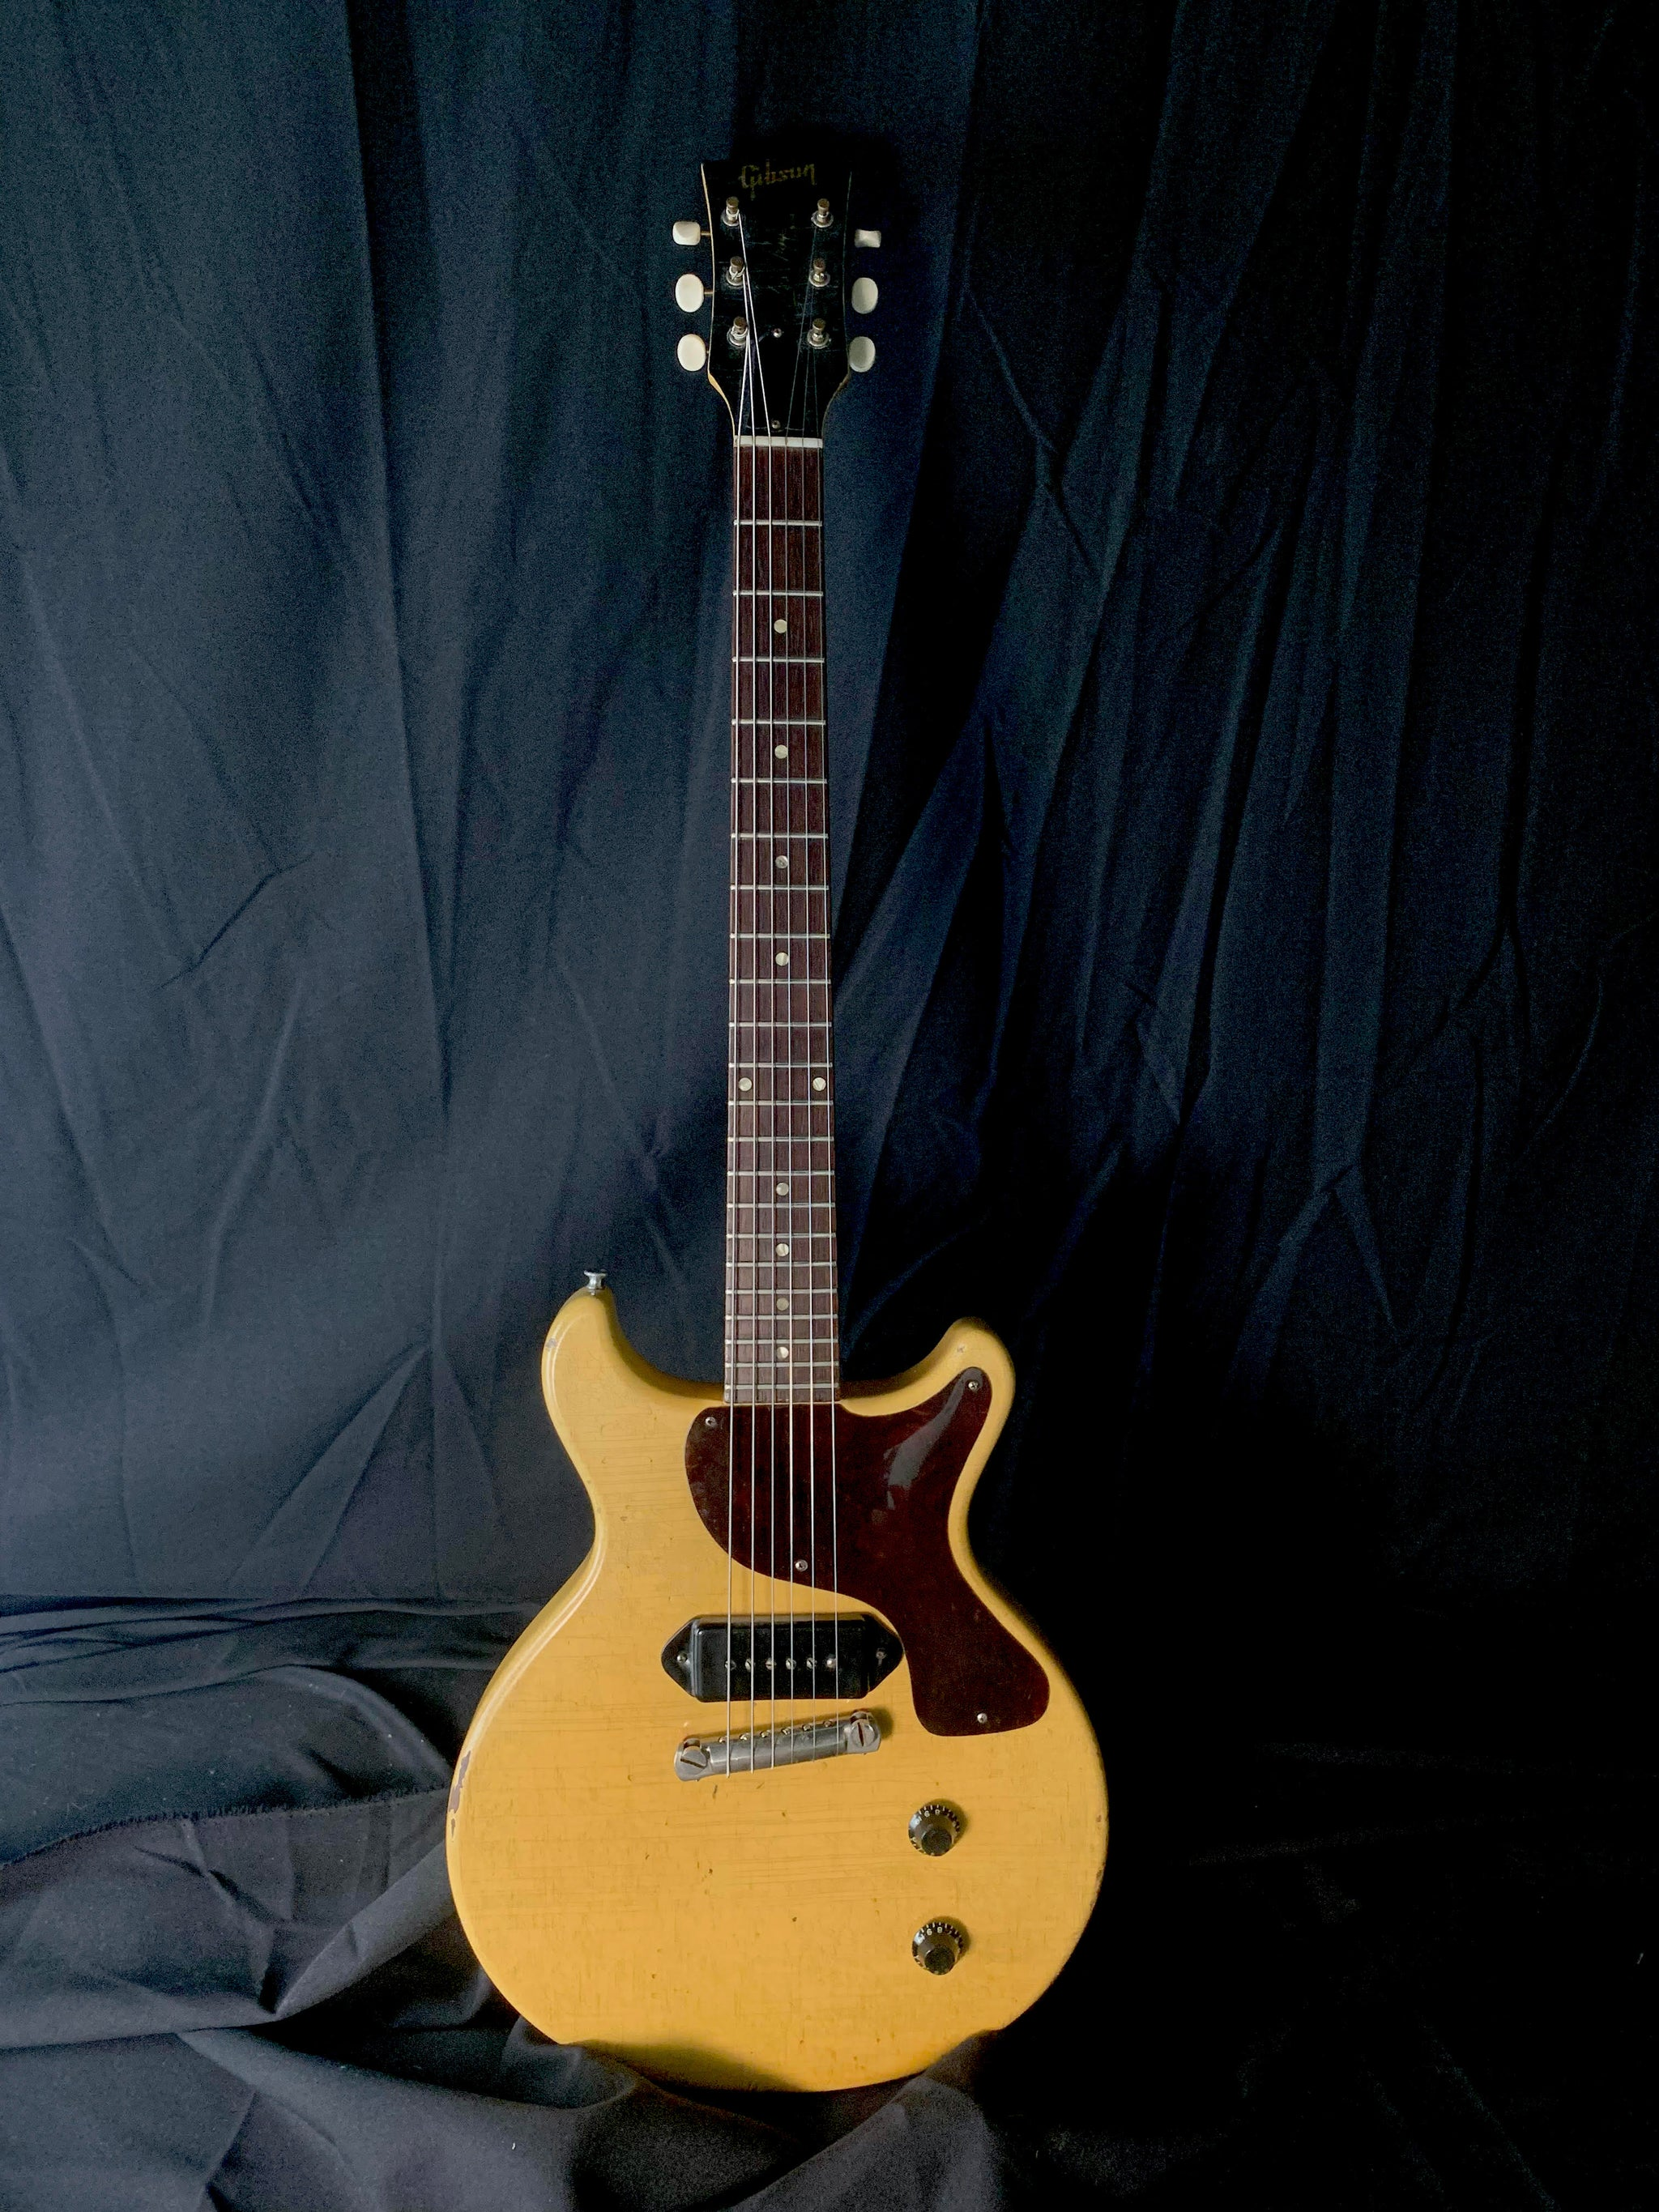 1959 Gibson Les Paul Jr. TV Yellow